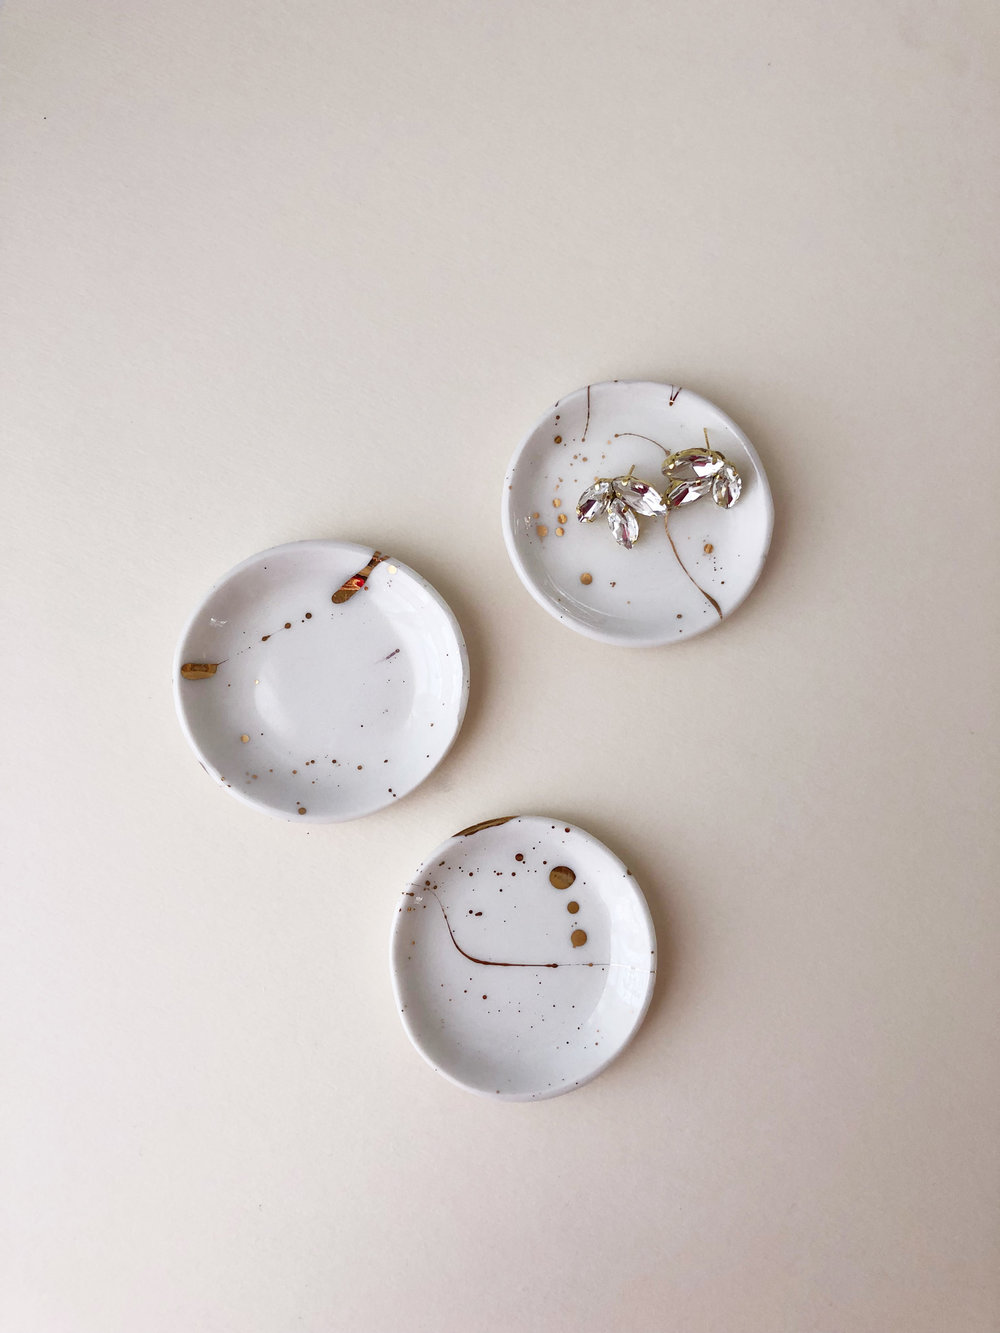 Jewelry Dish: TinTinPieces x Hushed Commotion